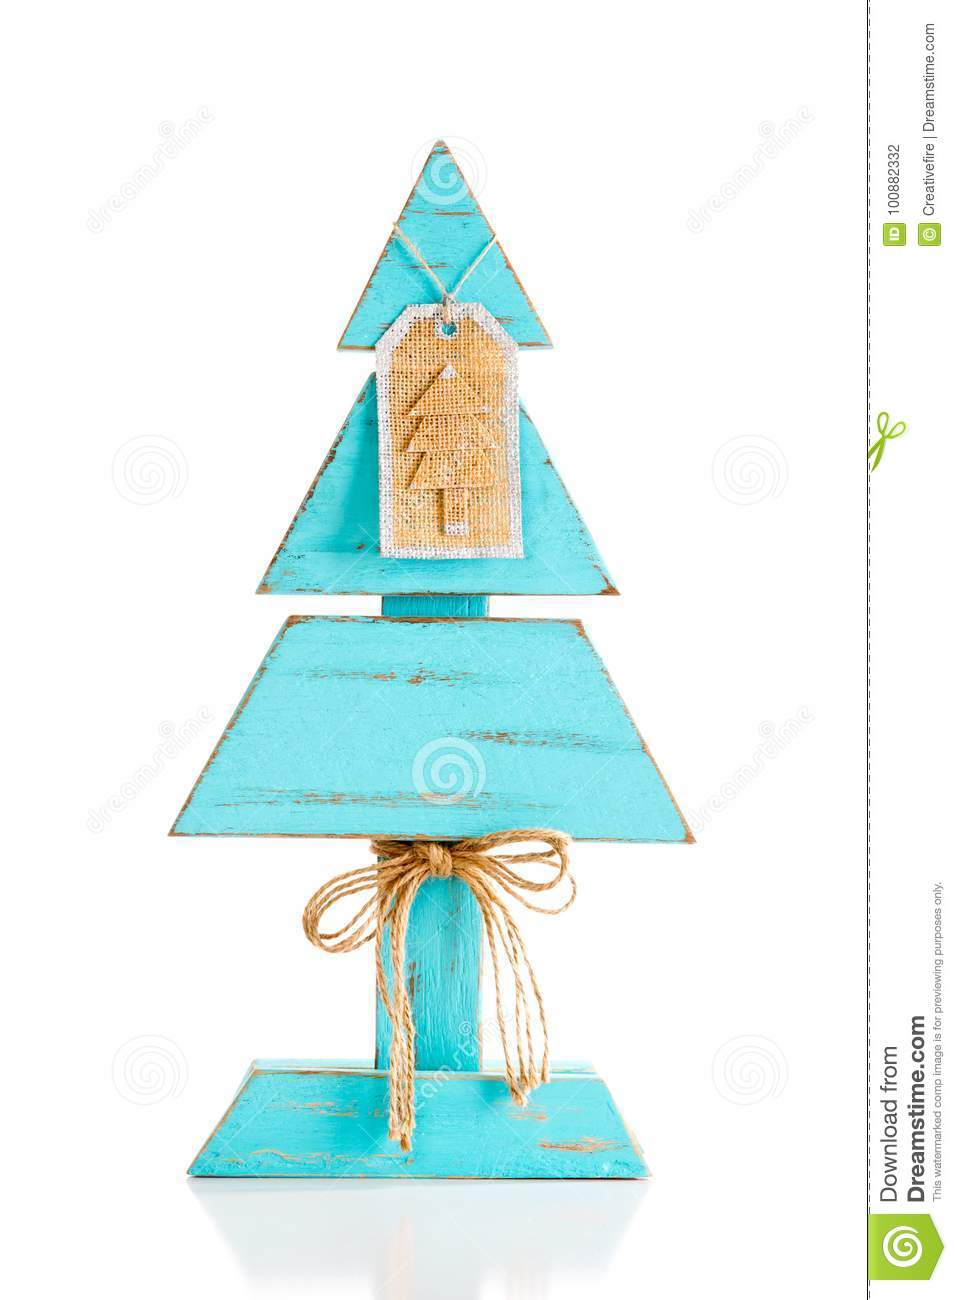 Blue Homemade Wooden Christmas Tree With Burlap Gift Label Decor ...